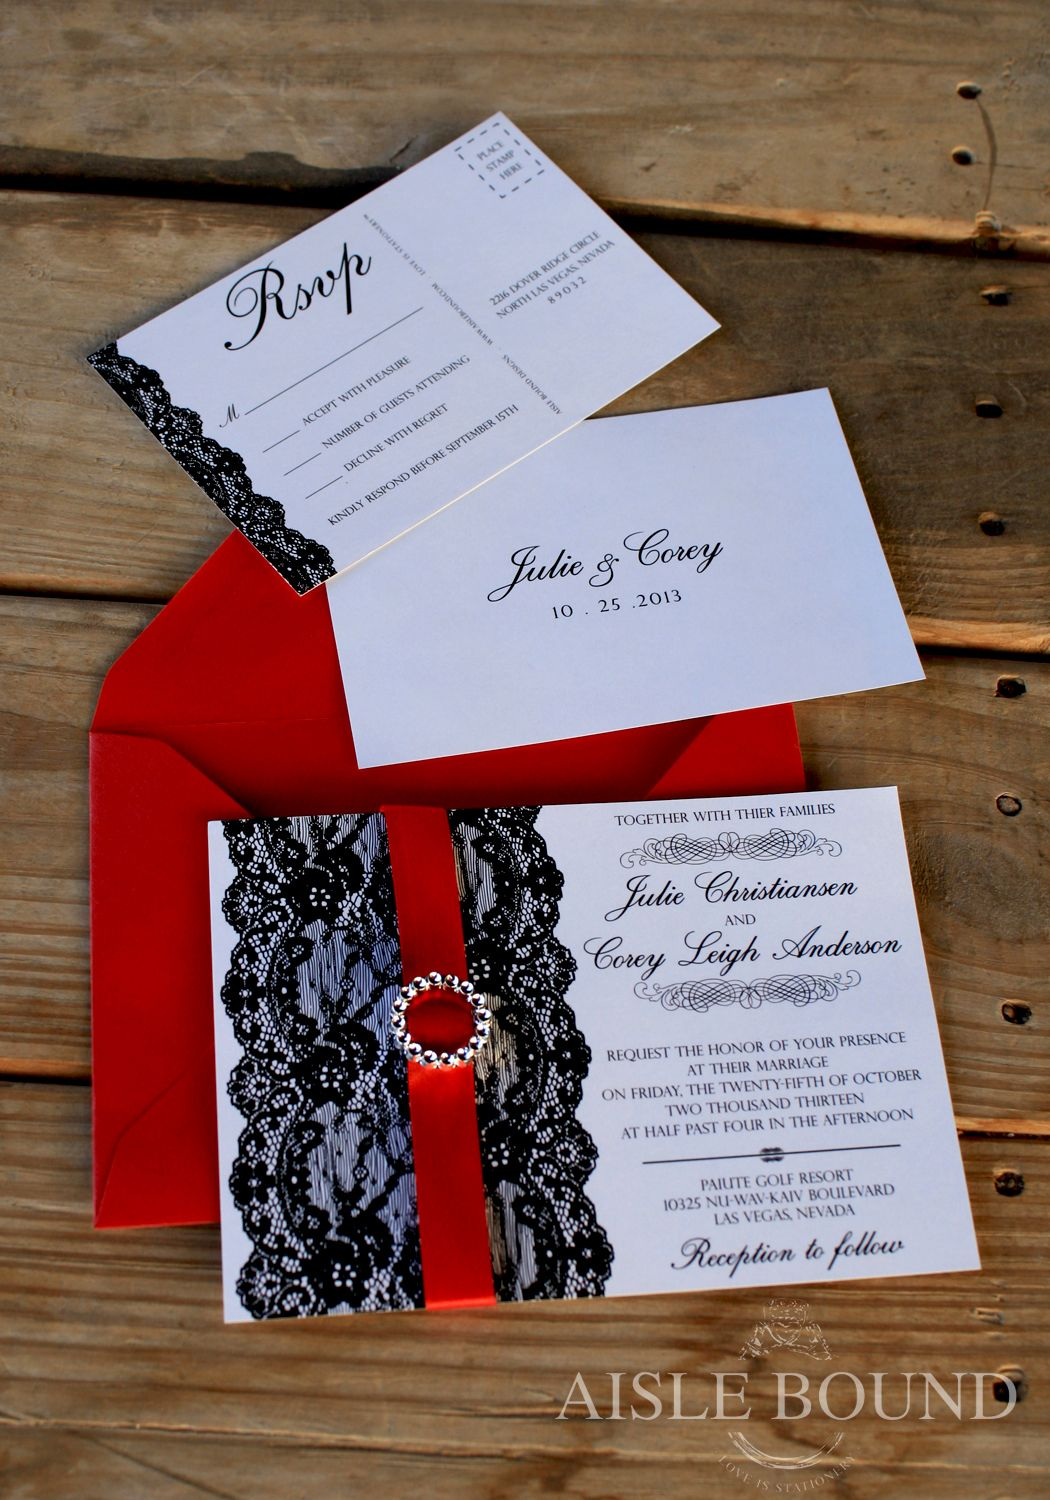 vintage hollywood • wedding invitation • metallic red envelope, Wedding invitations